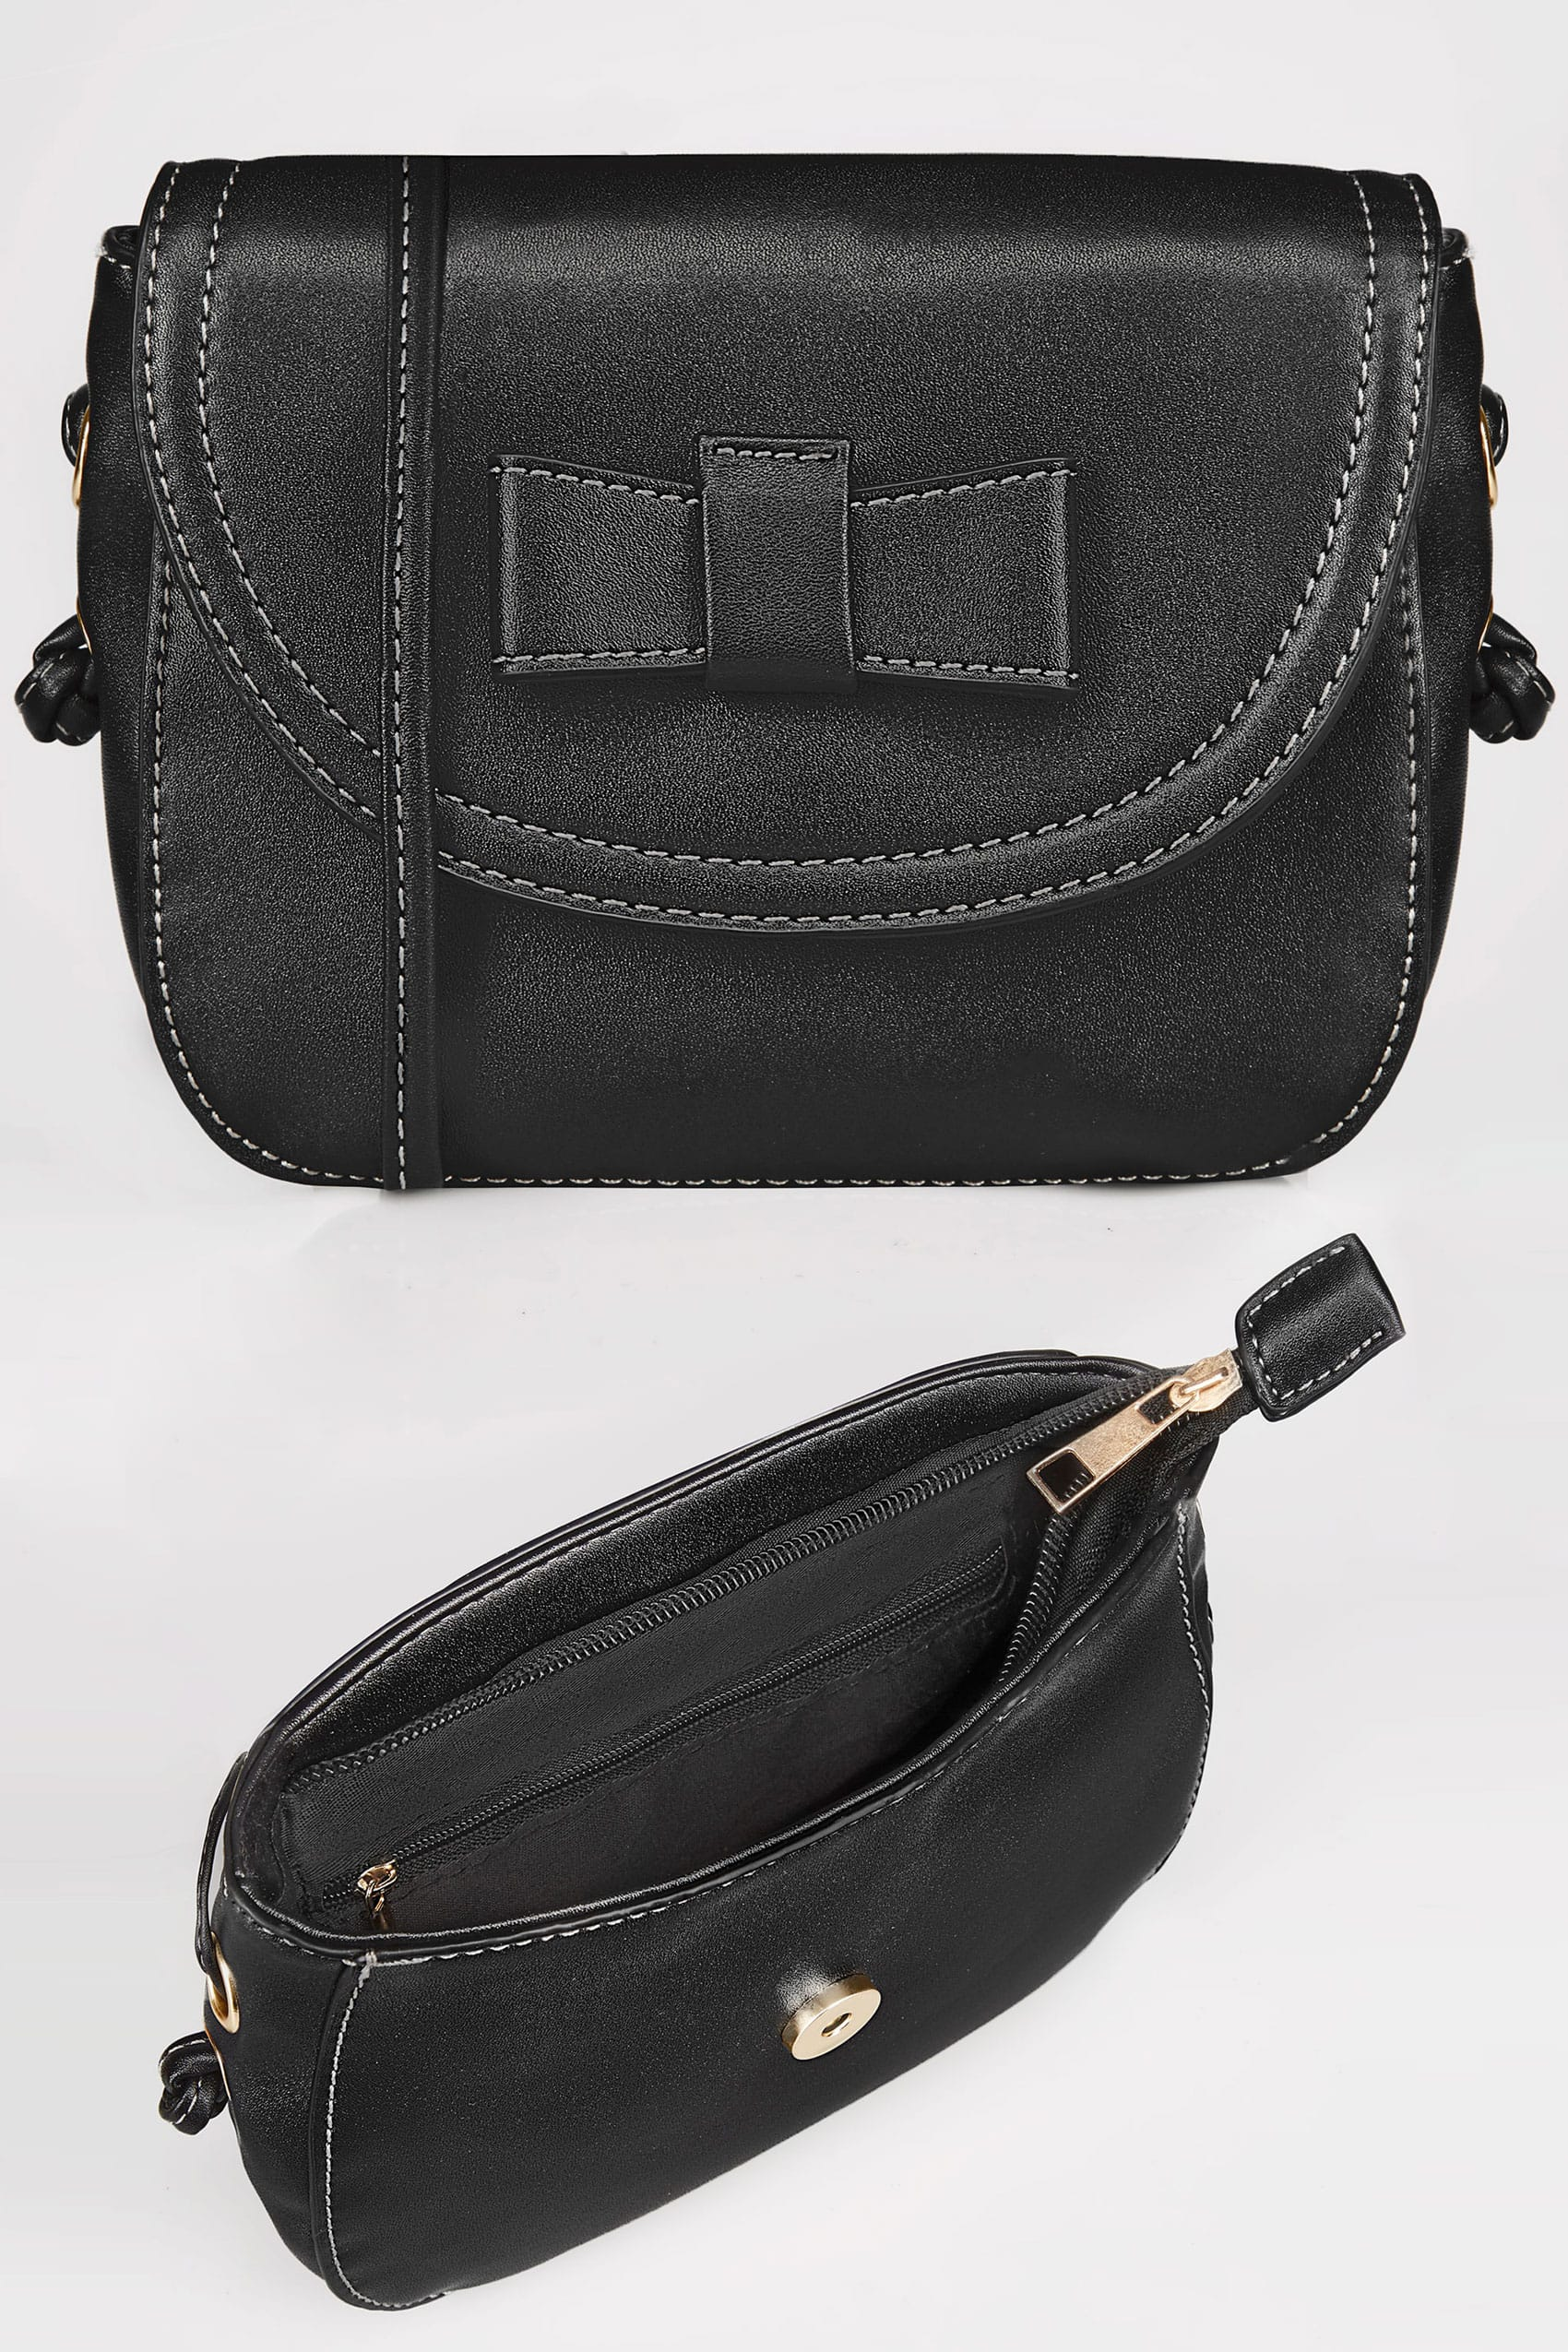 black mini applique bow cross body bag with extended strap. Black Bedroom Furniture Sets. Home Design Ideas